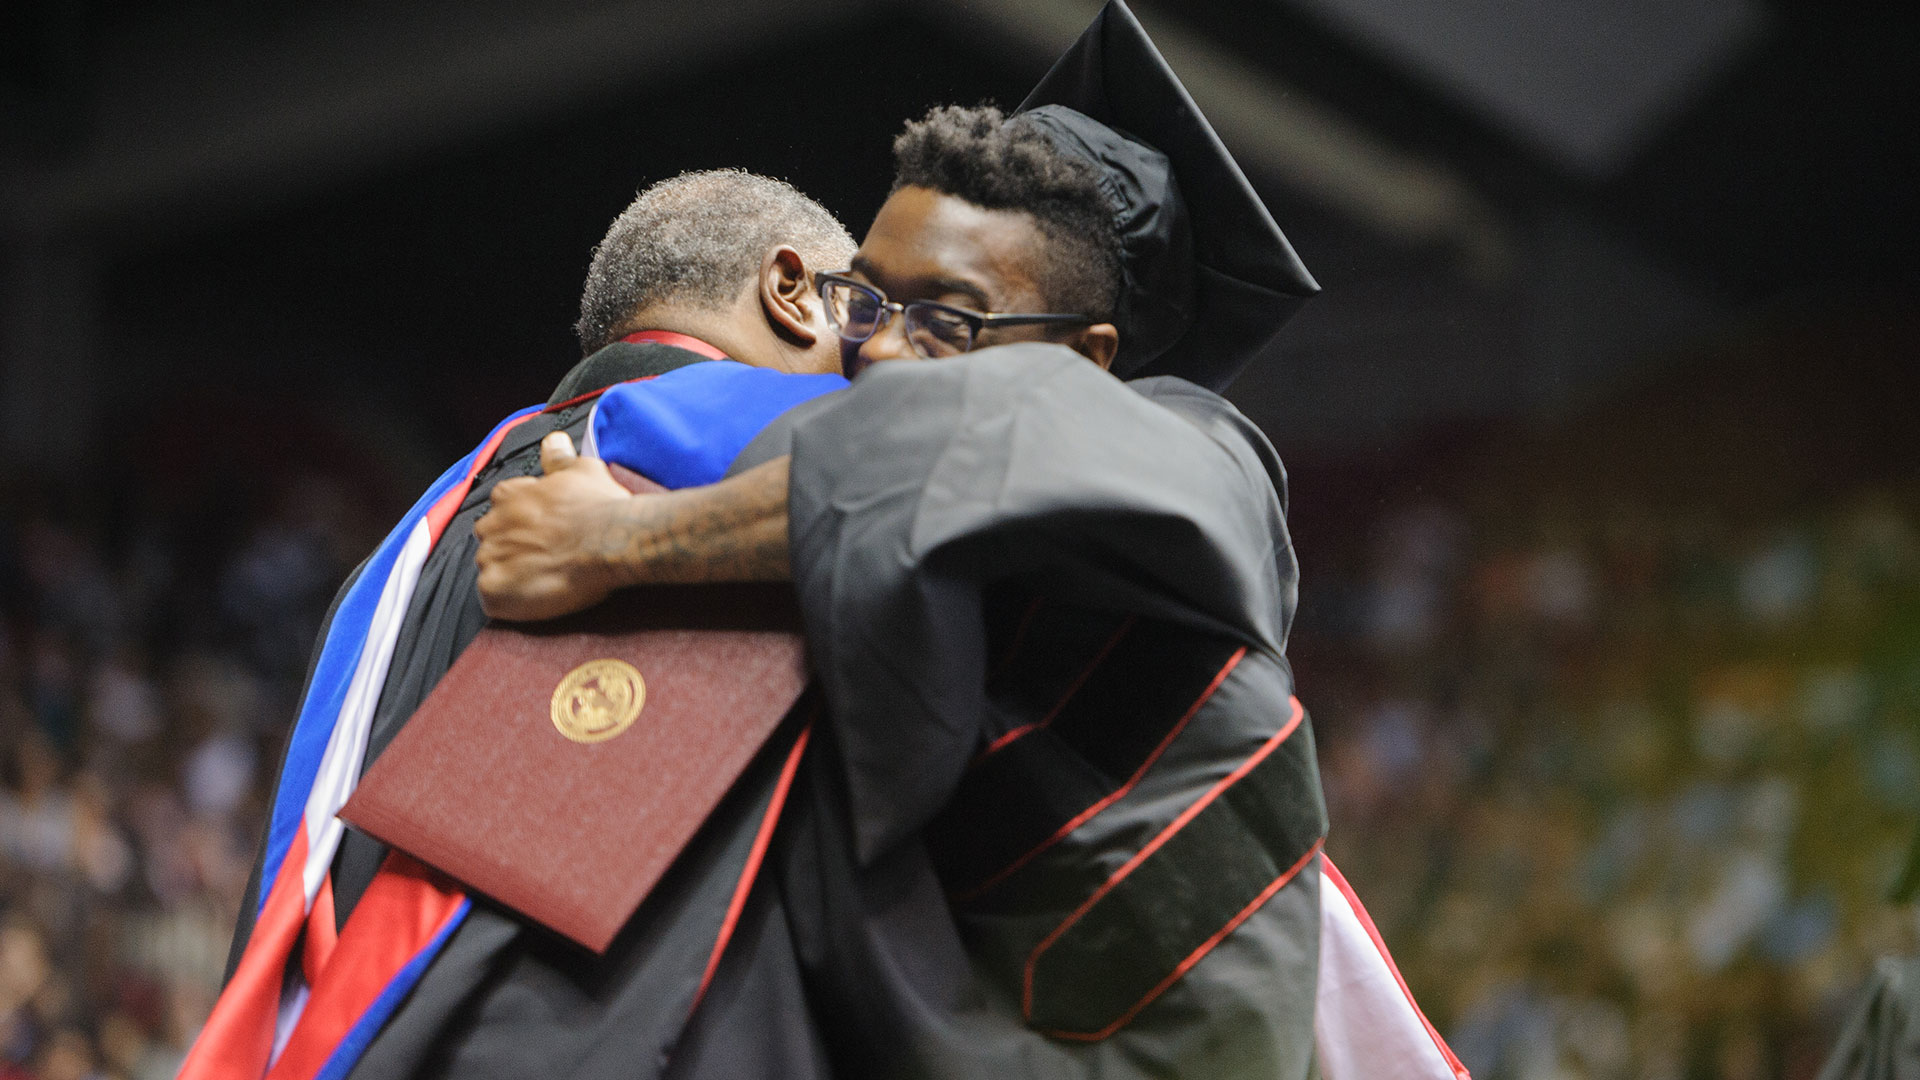 A graduate hugs a professor during his walk across the stage.